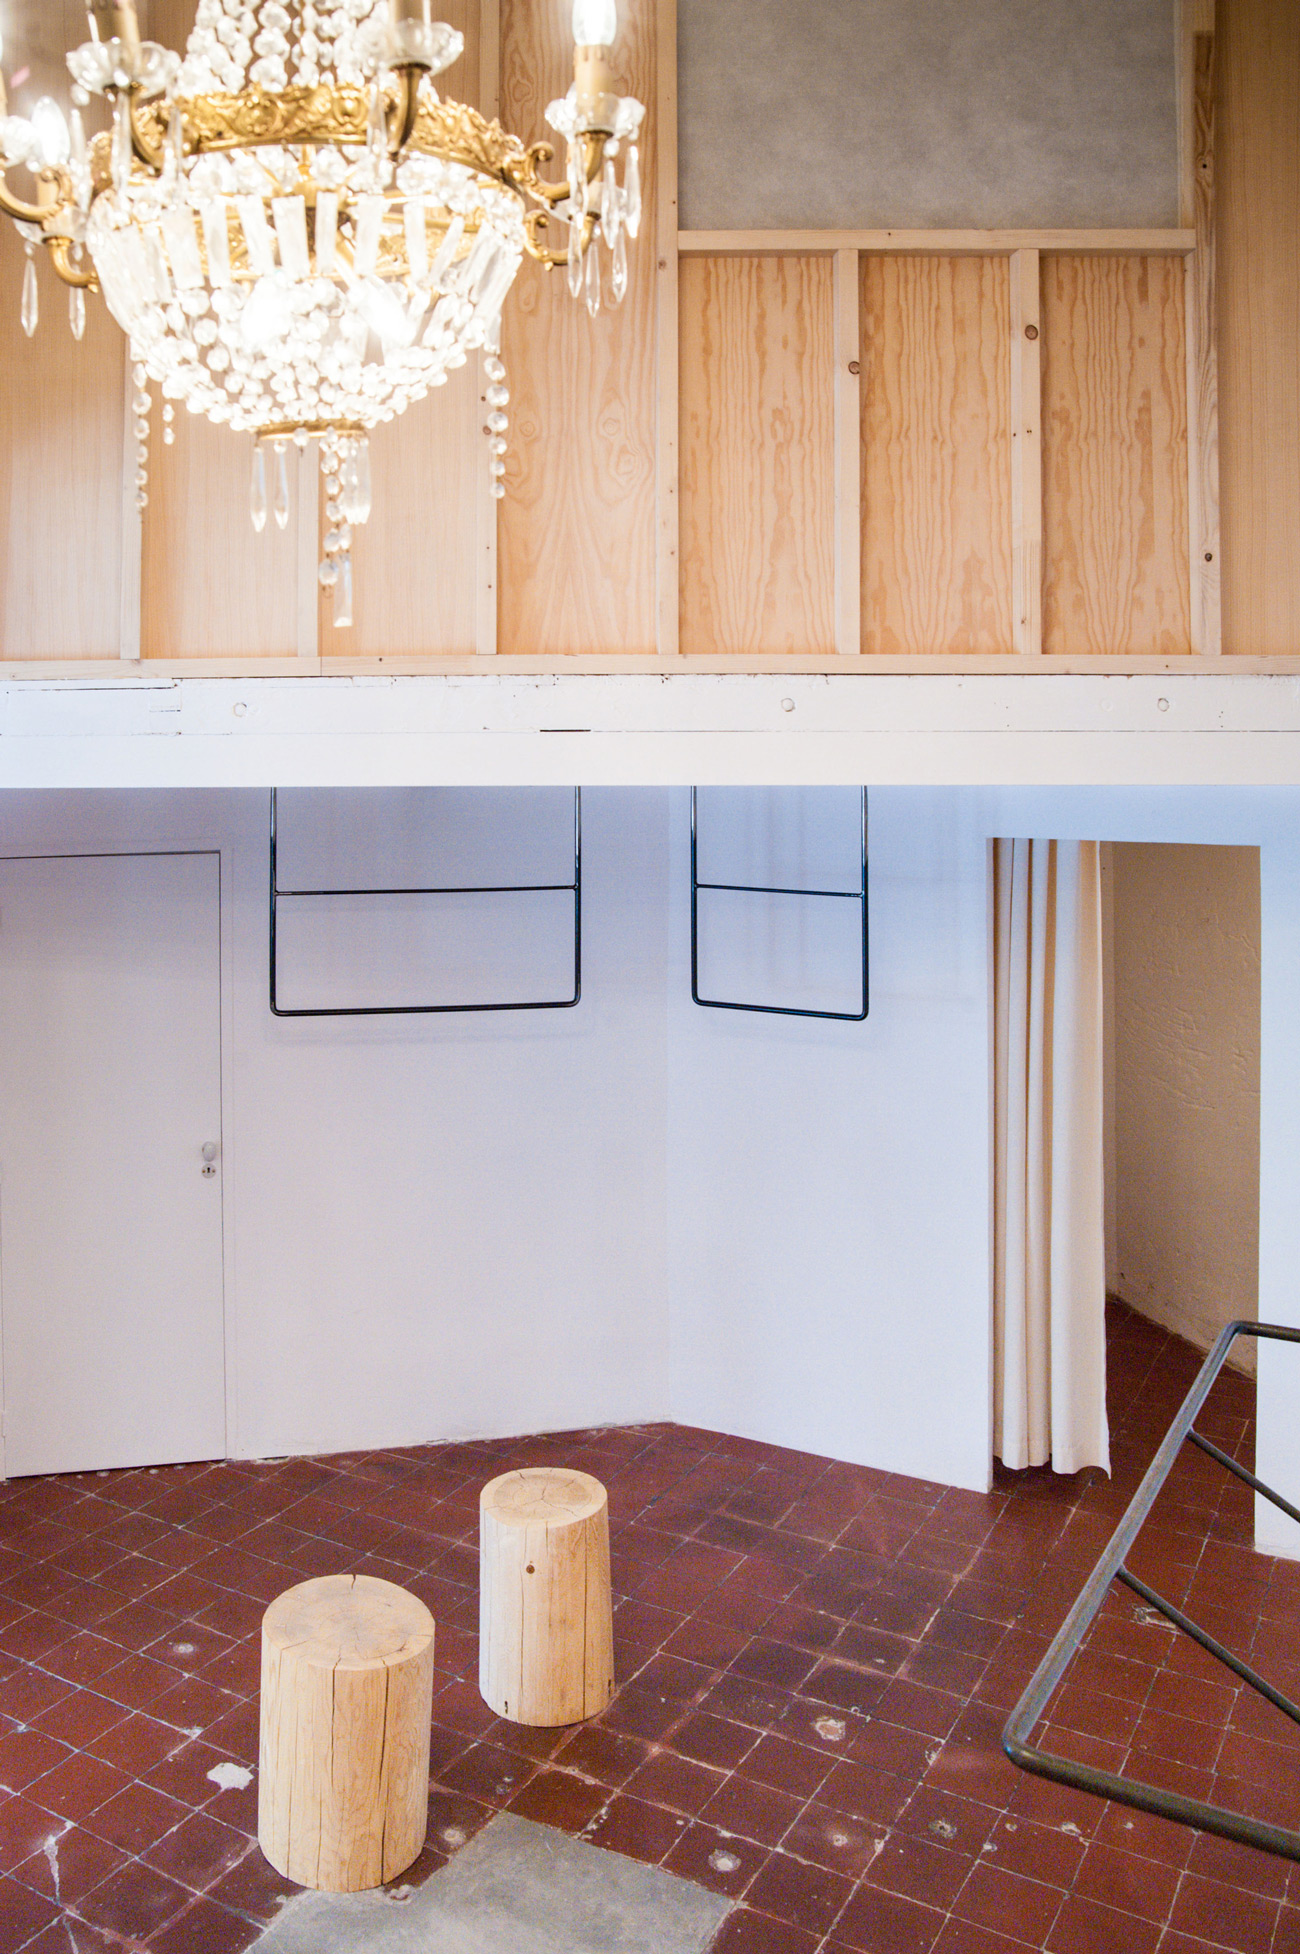 Shop and Exhibition Space in Marseille / Atelier M3a Architectes (5)